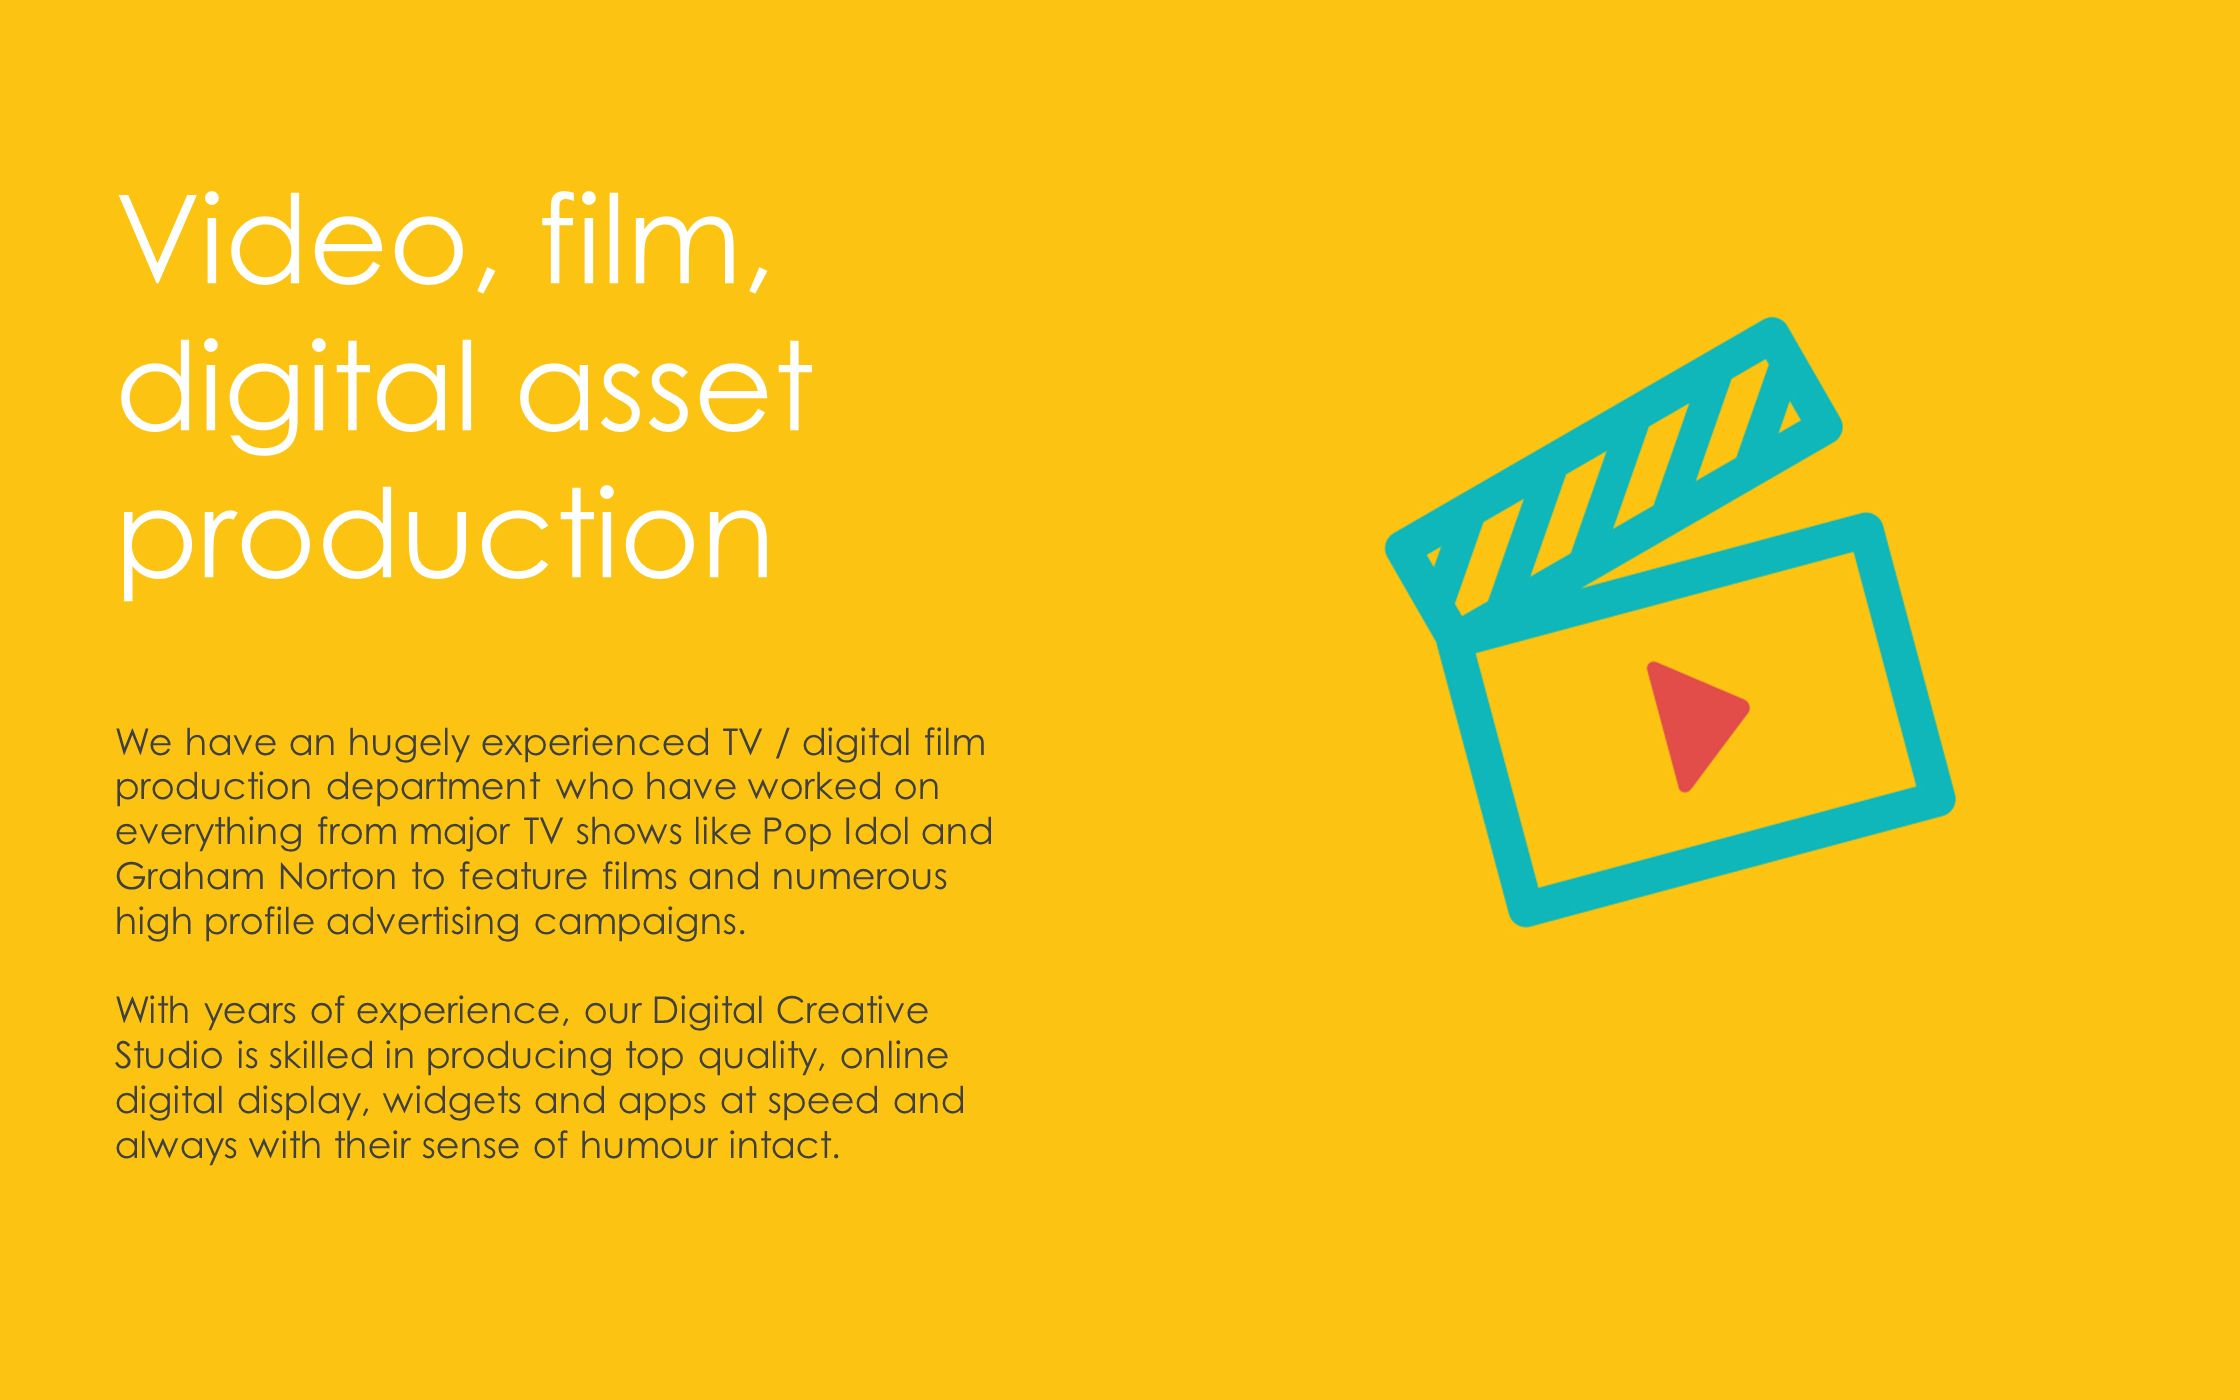 We have an hugely experienced TV / digital film production department who have worked on everything from major TV shows like Pop Idol and Graham Norton to feature films and numerous high profile advertising campaigns.